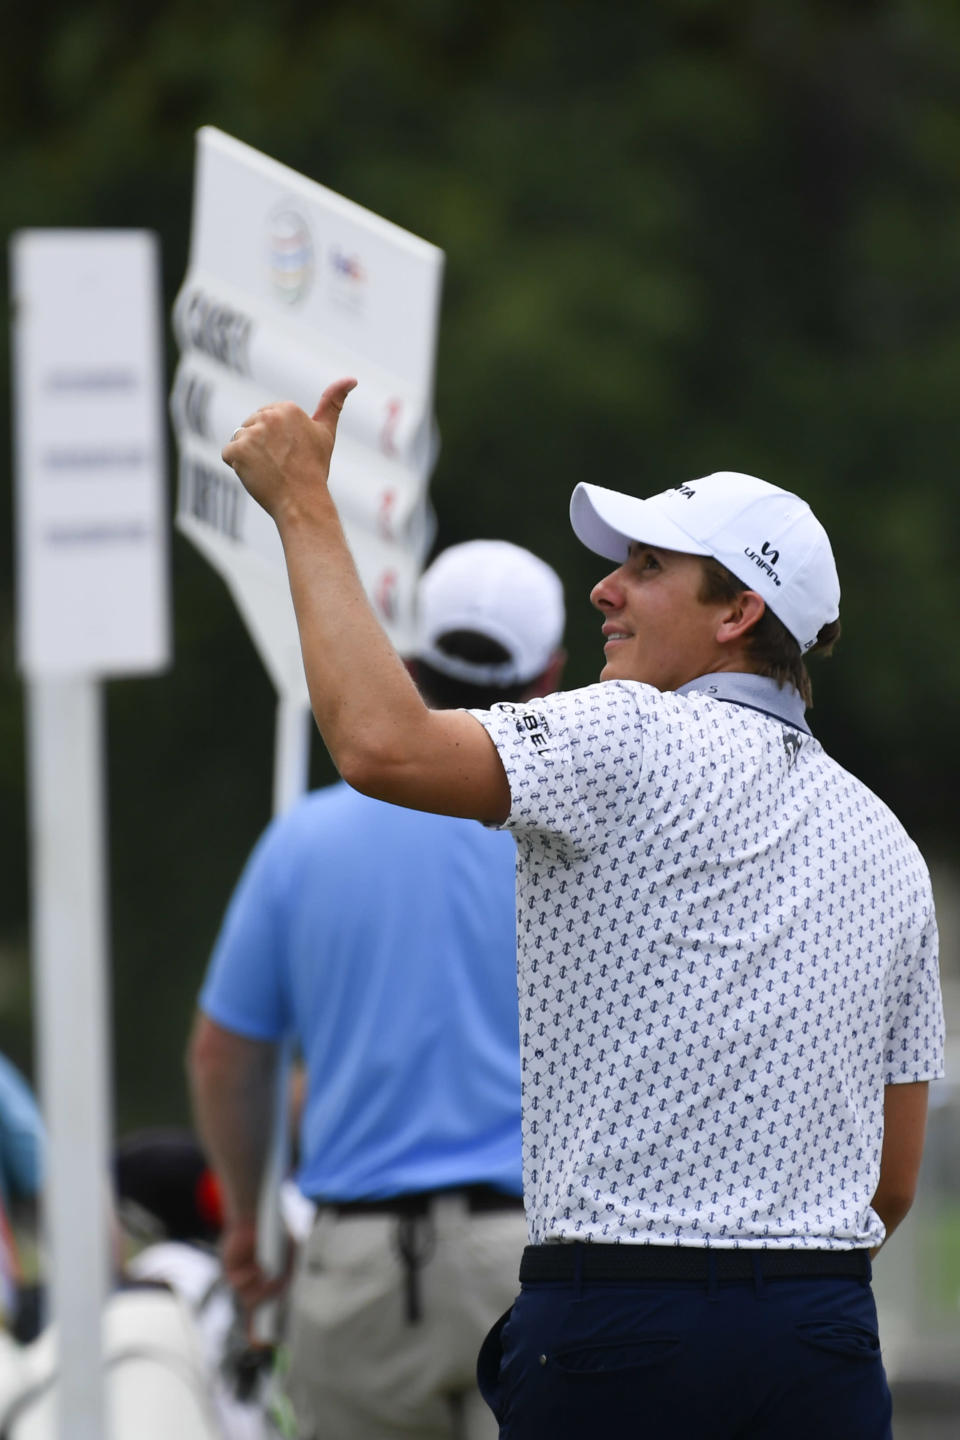 Carlos Ortiz, of Mexico, gestures to spectators as he walks off the 18th green after finishing the first round of the World Golf Championship-FedEx St. Jude Invitational tournament, Thursday, Aug. 5, 2021, in Memphis, Tenn. (AP Photo/John Amis)